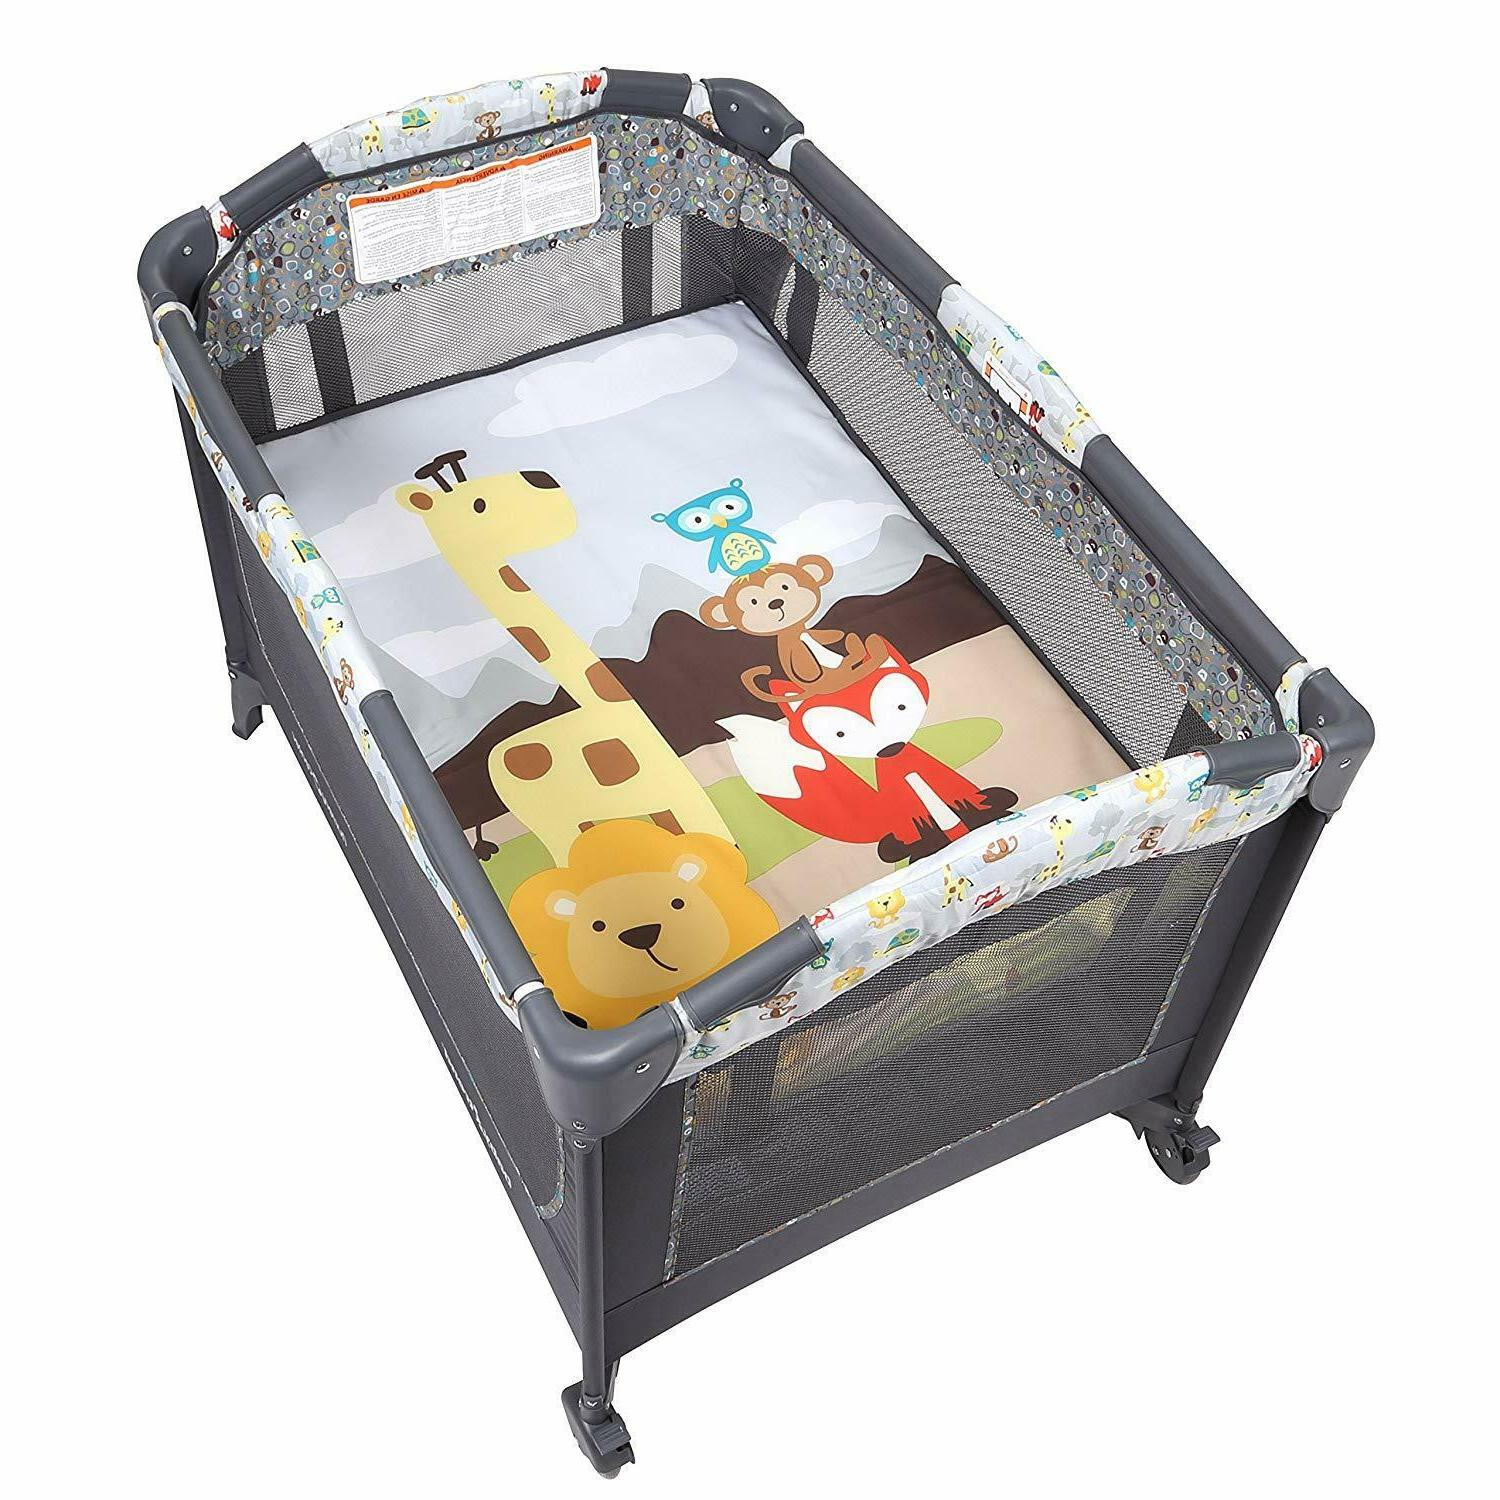 Baby Nursery Center Playard and Play Neutral Bassinet Crib...